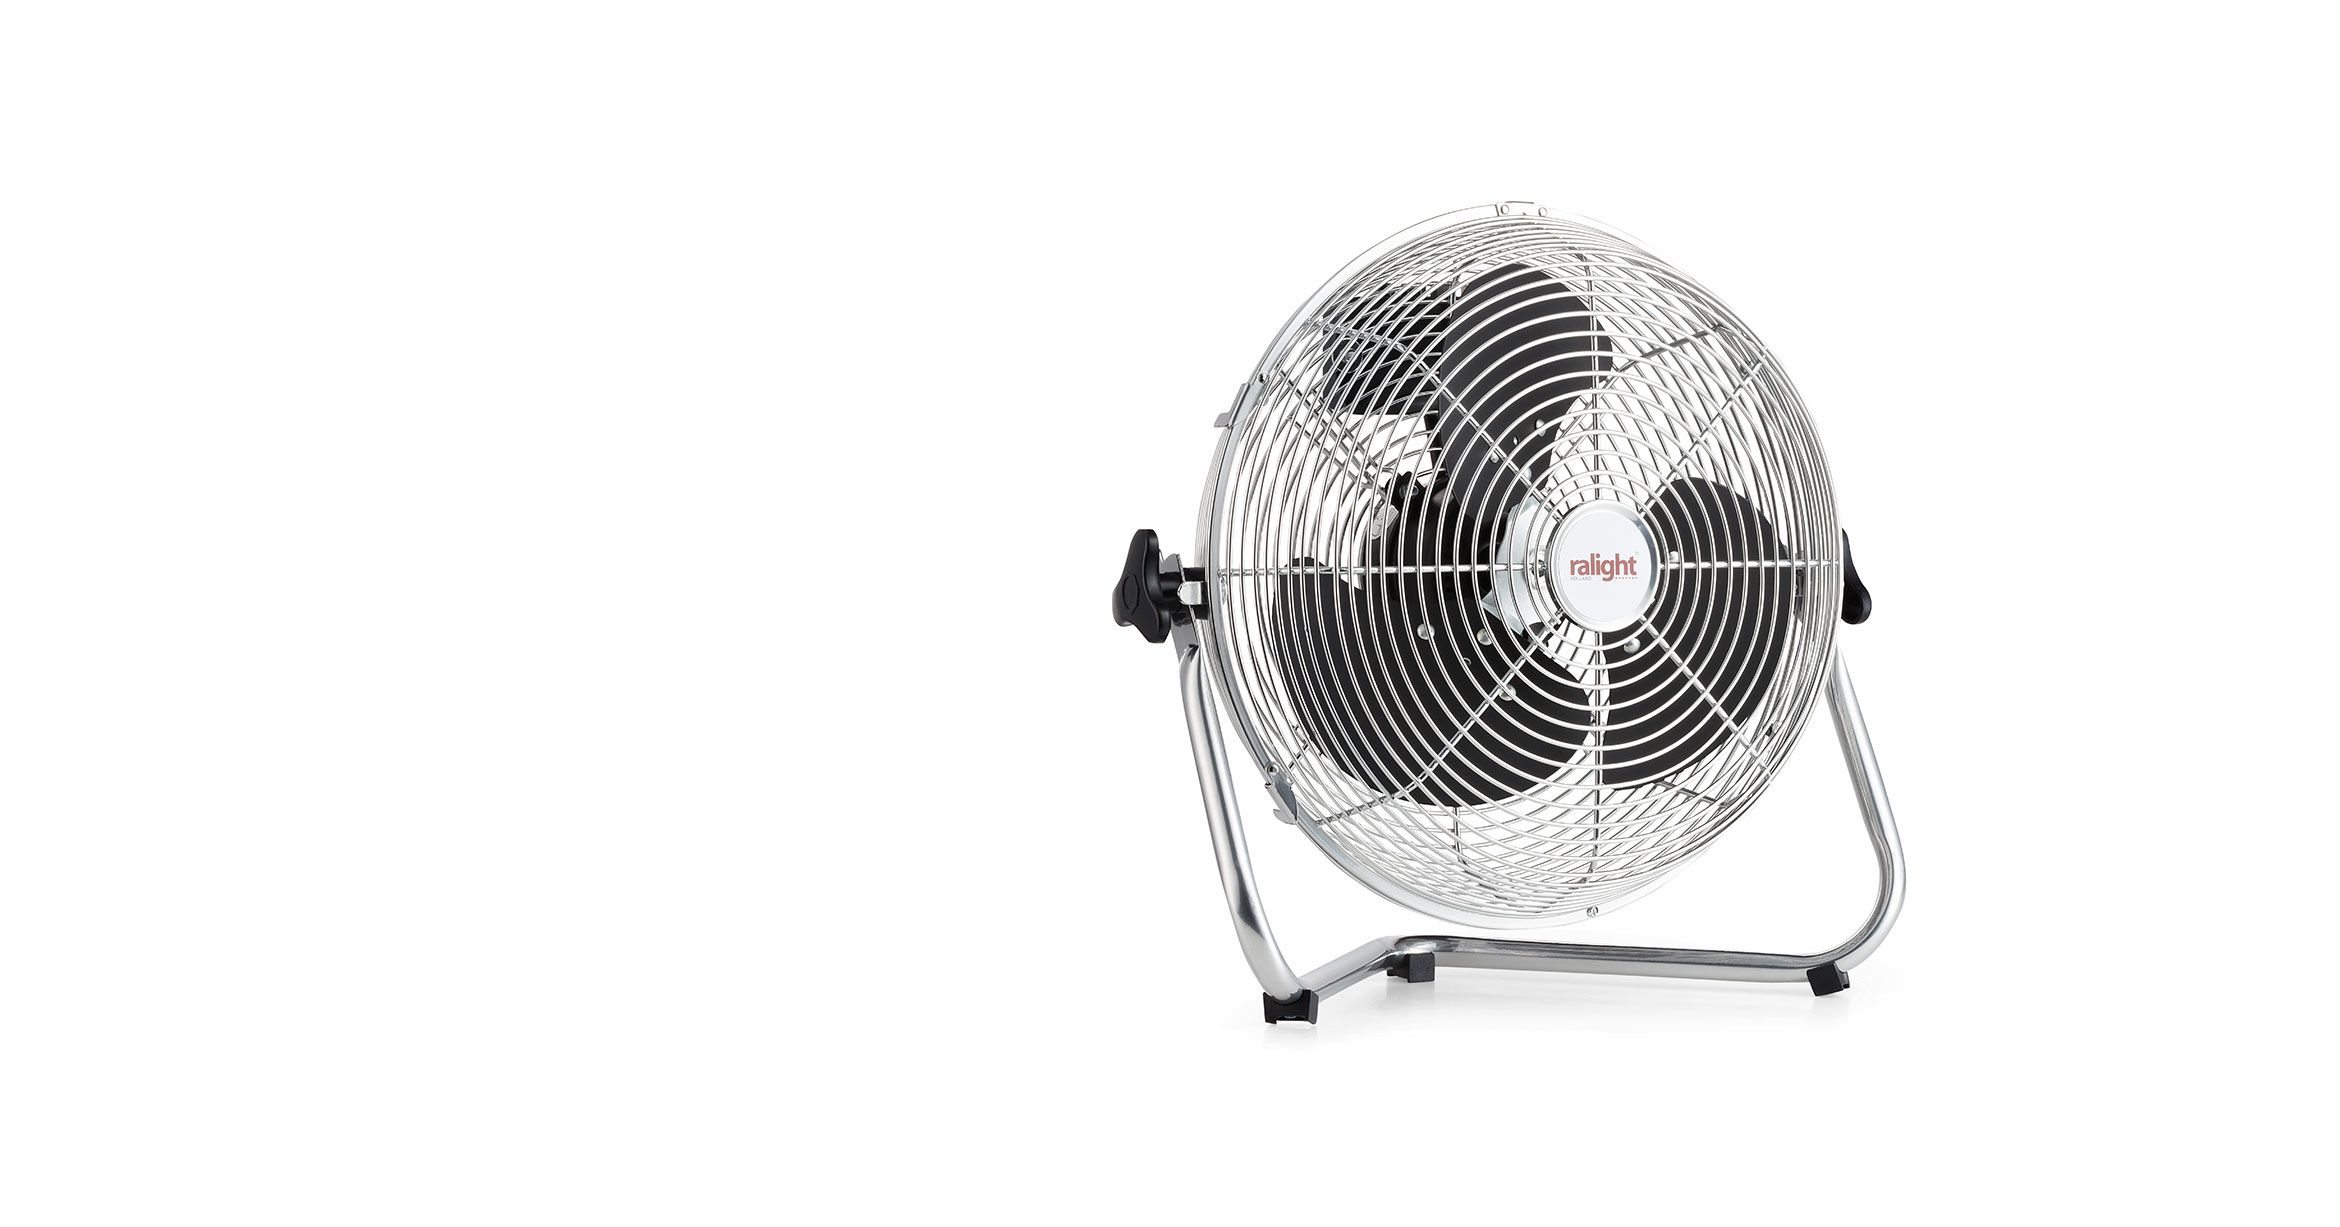 Floor fan 12inch - Ralight